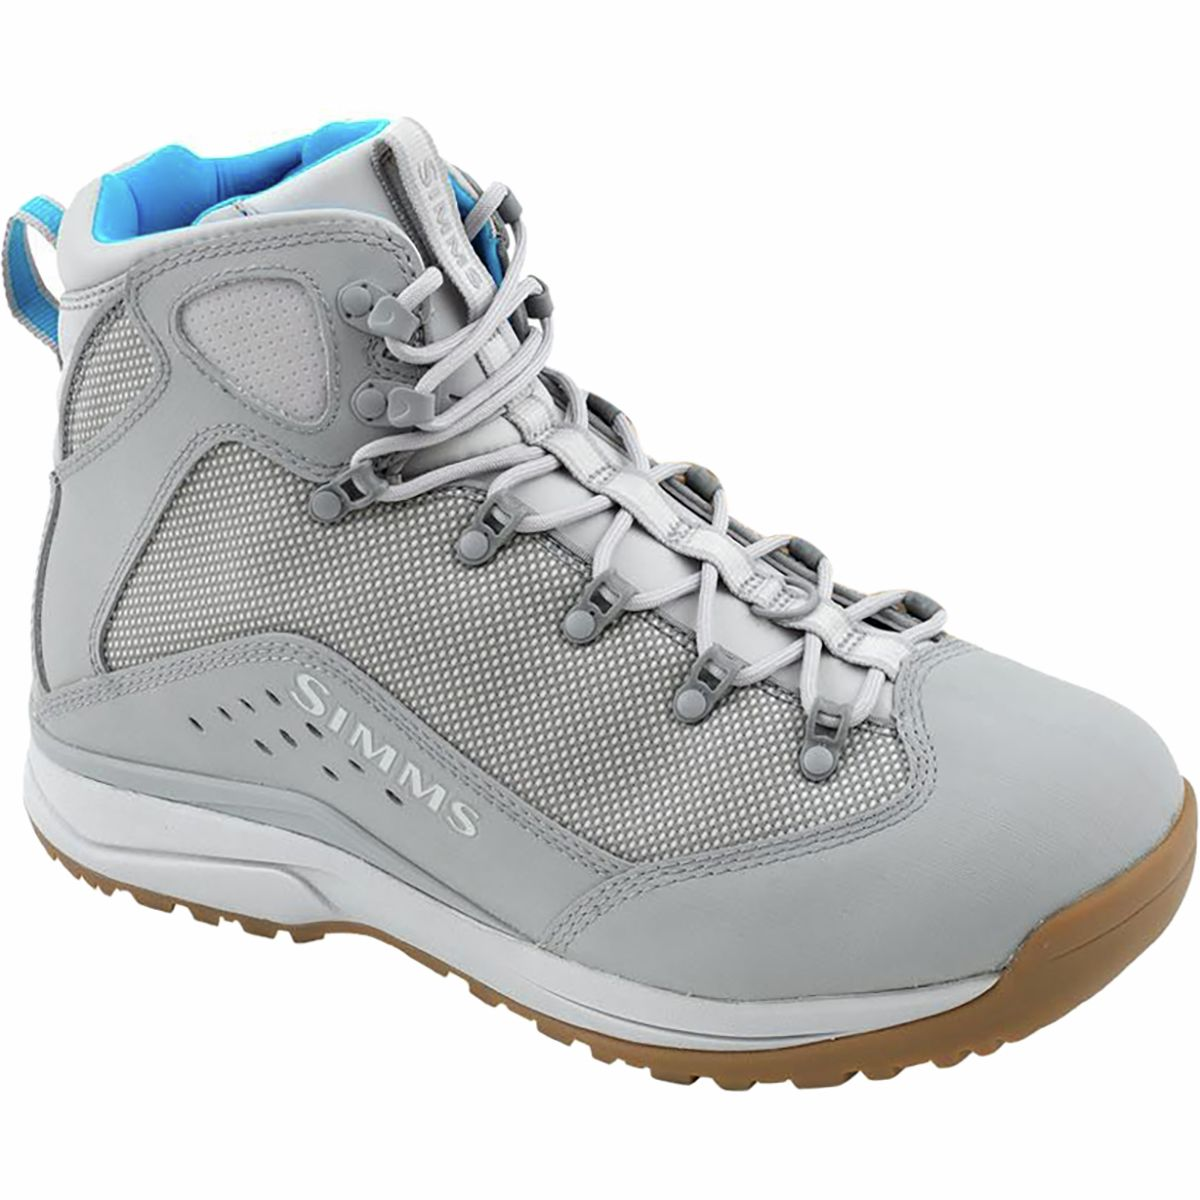 Simms VaporTread Saltwater Wading Boot